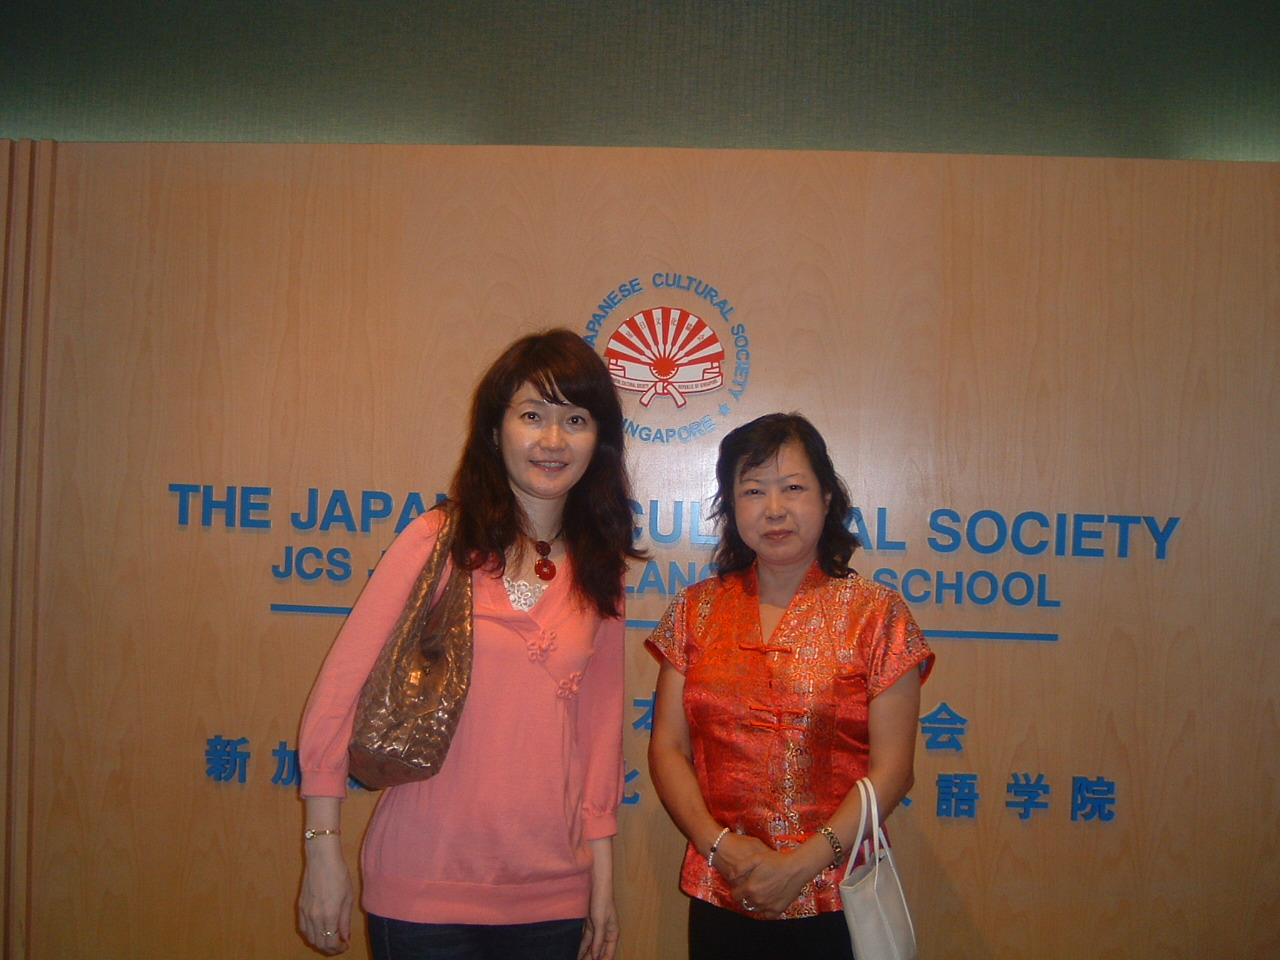 with_Ms.Ng.JPG